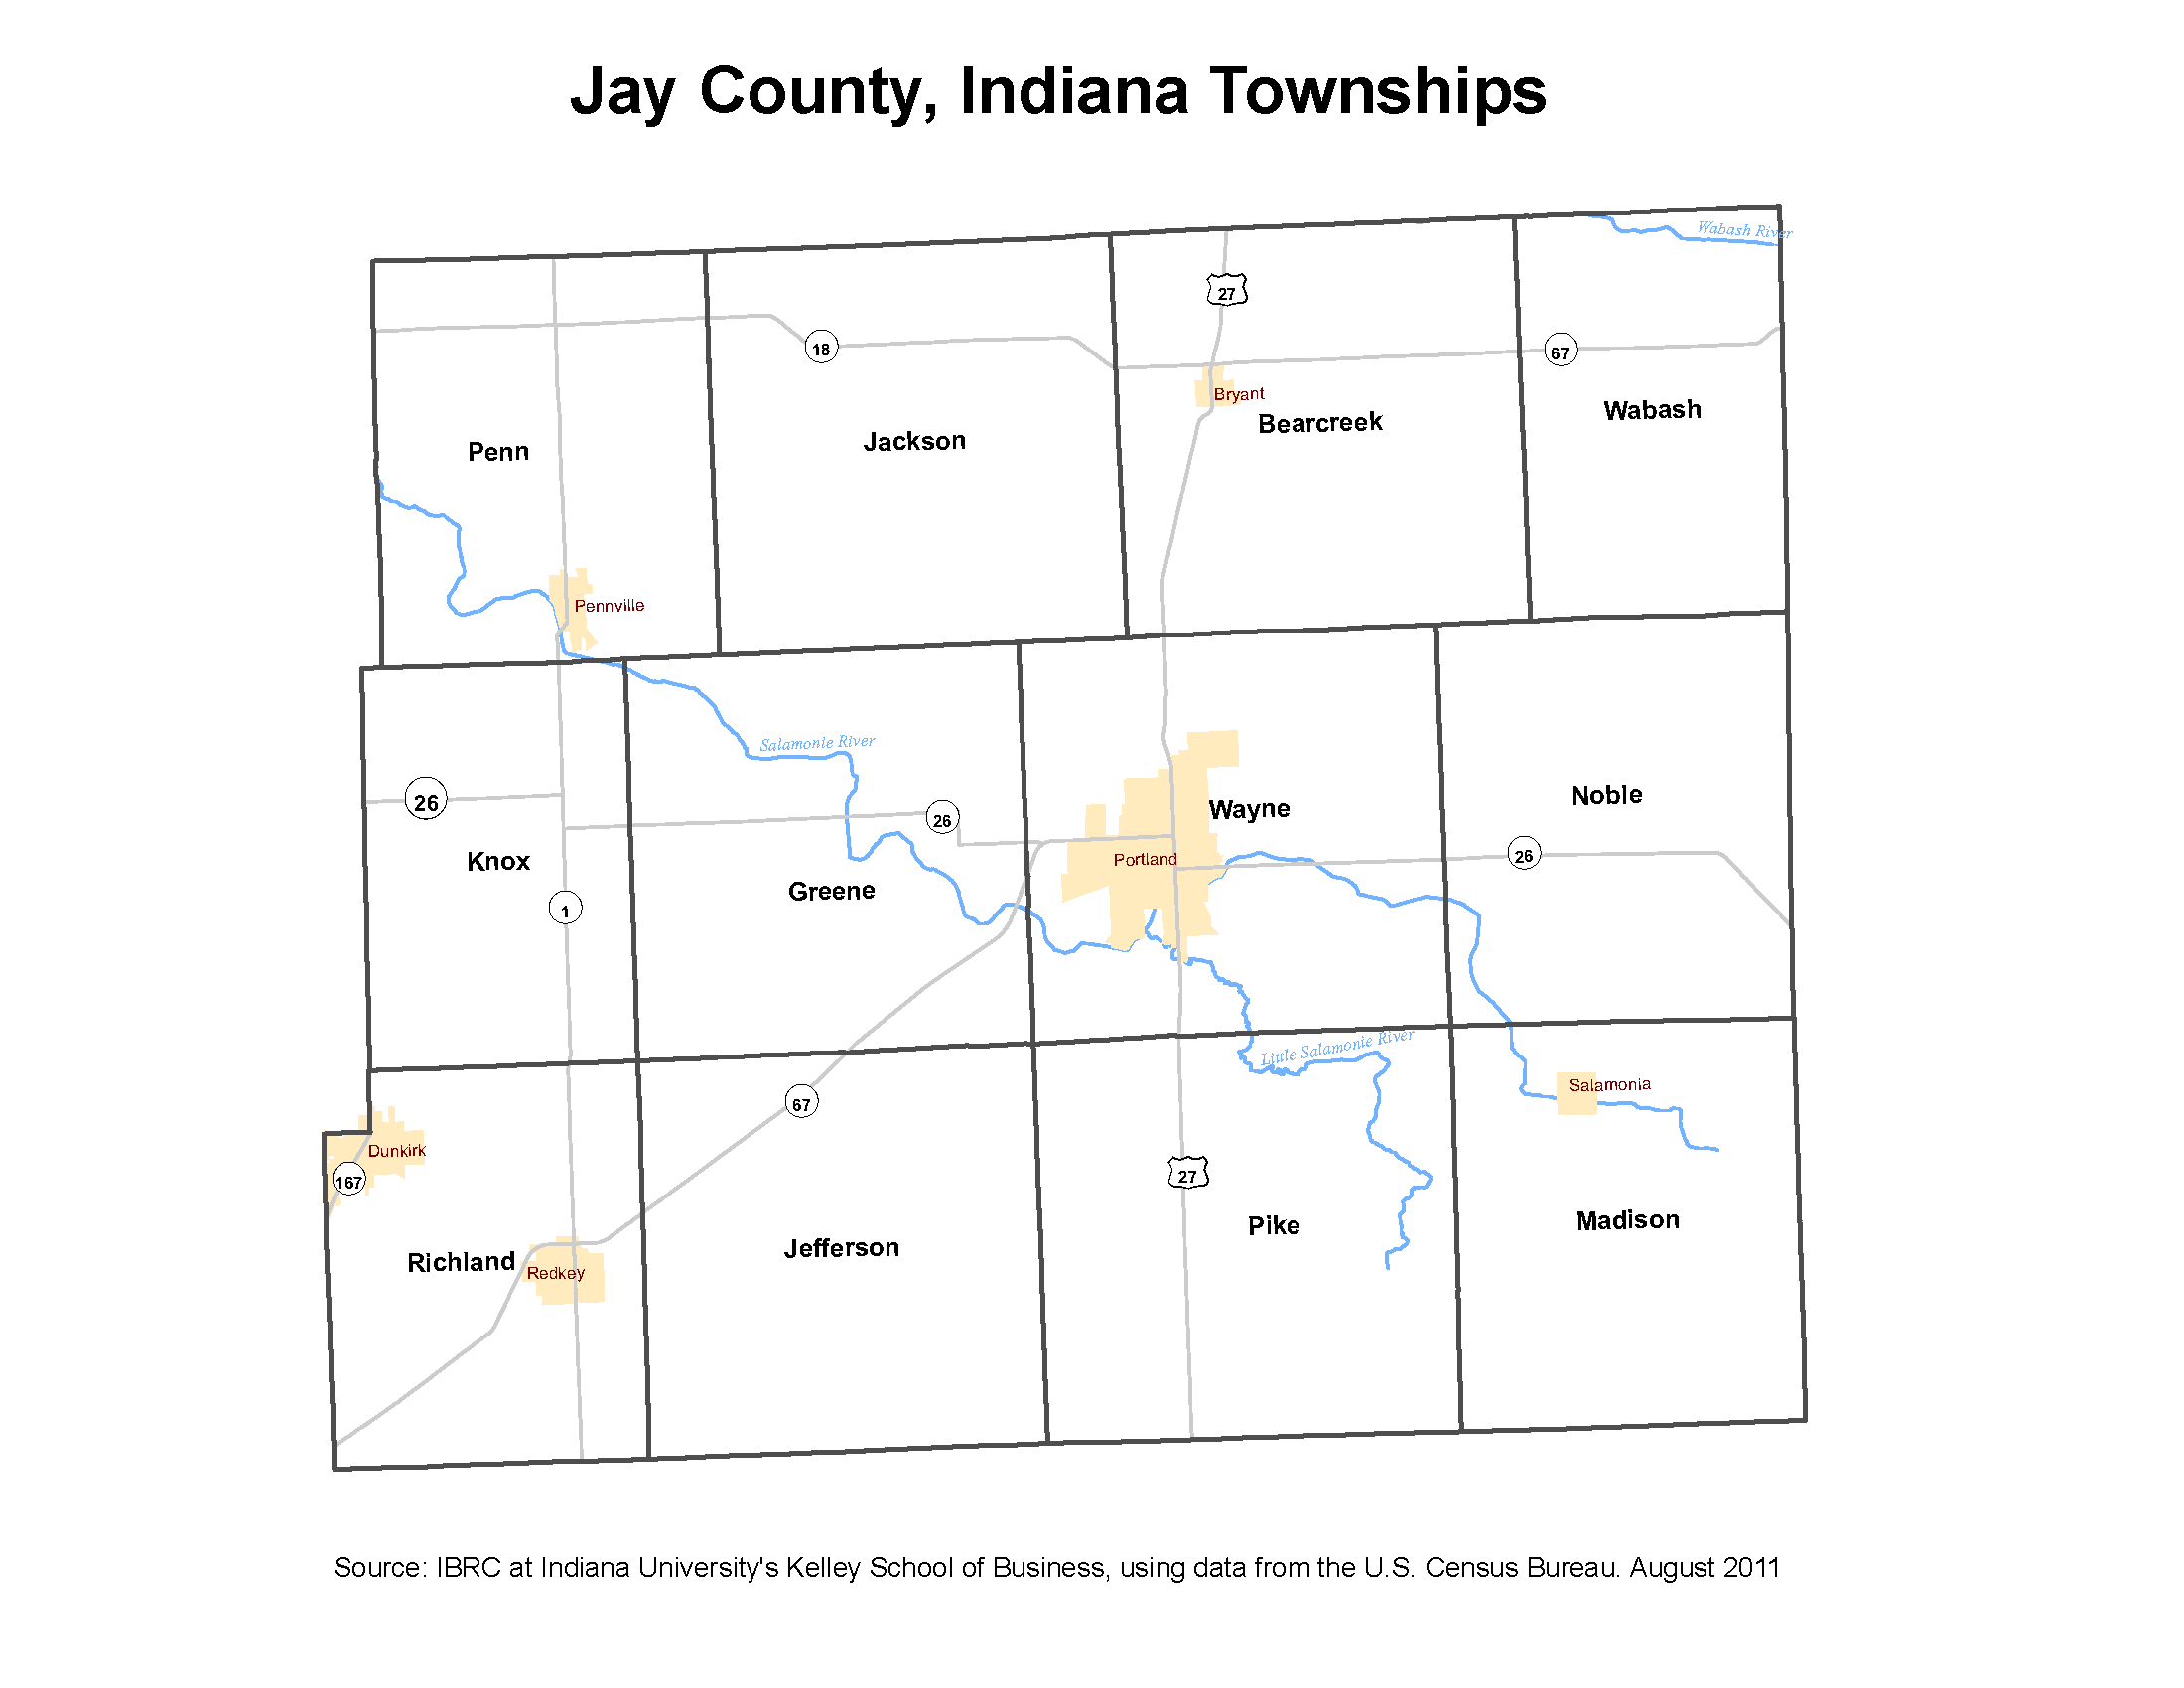 Township Maps: STATS Indiana on putnam county, lawrence county, map of miami county indiana, benton county, map of clinton county indiana, map of clay county indiana, grant county, miami county, map of jay county indiana, steuben county, map of lake county indiana, porter county, morgan county, map of perry county indiana, map of montgomery county indiana, wells county, knox county, map of hamilton county indiana, map of martin county indiana, map of jackson county indiana, lake county, laporte county, map of delaware county indiana, map of orange county indiana, pulaski county, washington county, clay county, map of benton county indiana, map of grant county indiana, tippecanoe county, map of clark county indiana, newton county, map of dearborn county indiana, map of st. joseph county indiana, vanderburgh county, map of franklin county indiana, map of johnson county indiana, map of henry county indiana, madison county, wabash county,